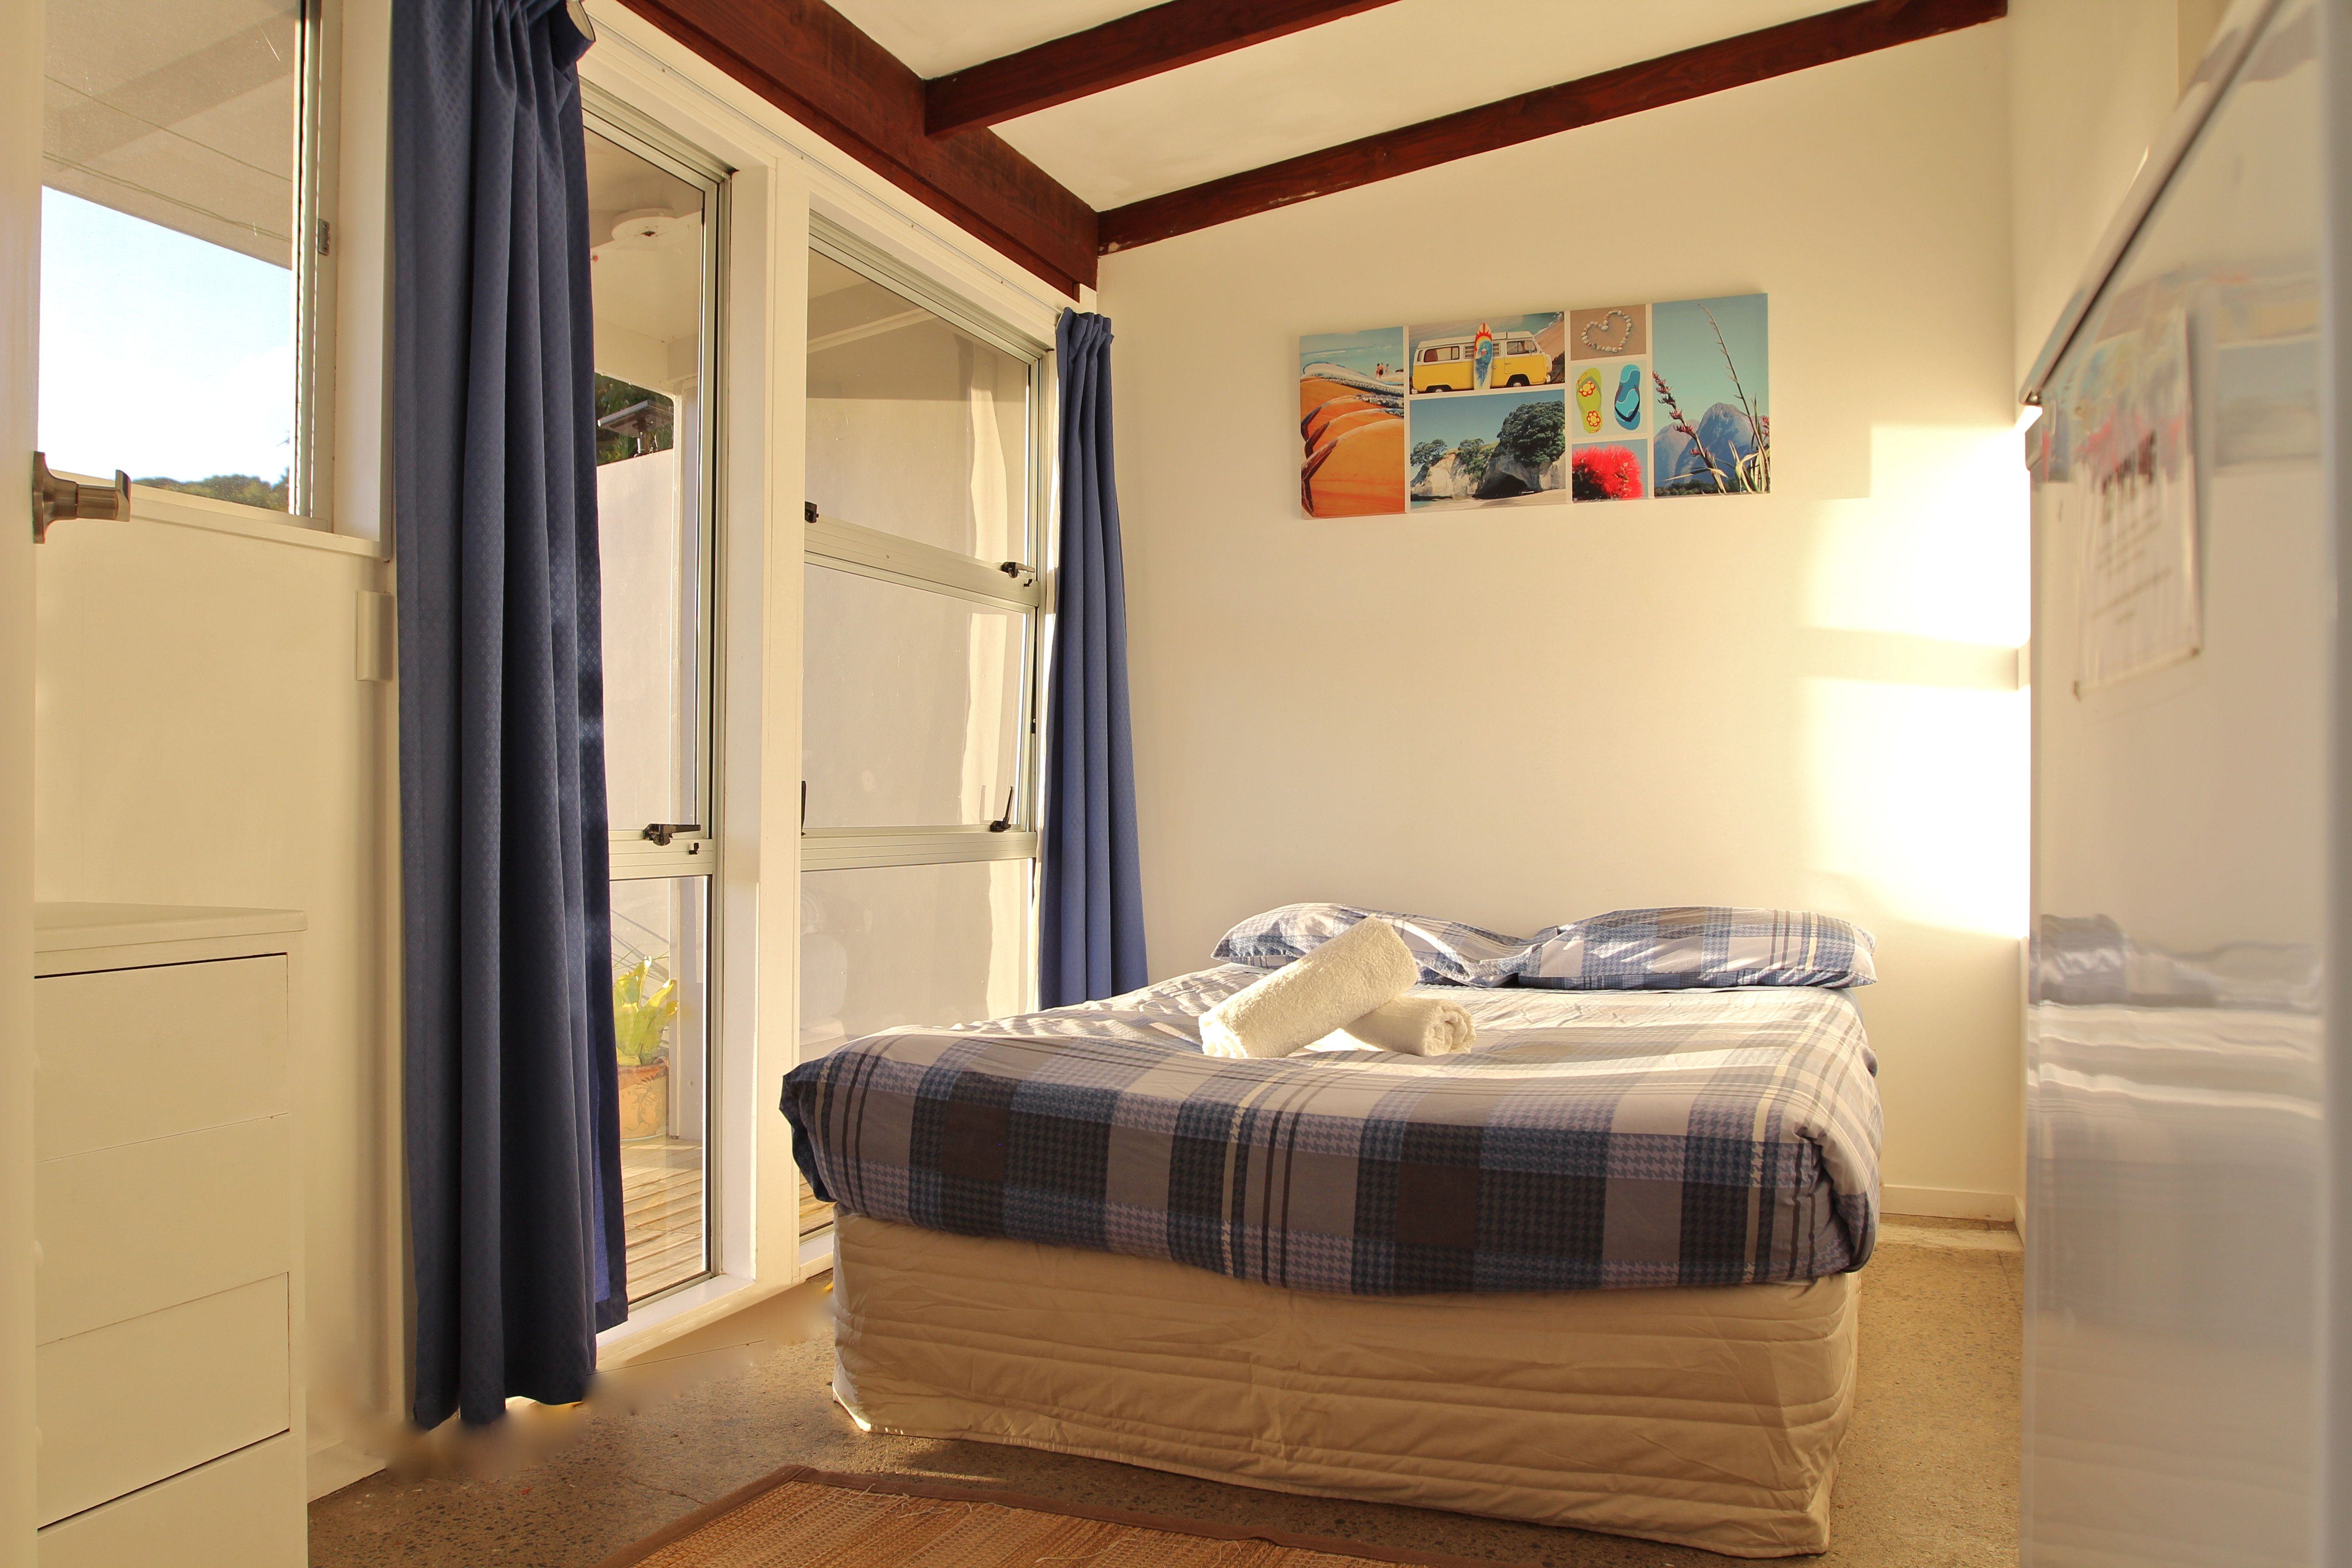 Interior design for double bedroom flat tourist flat  russellorongo bay holiday park double bedroom is